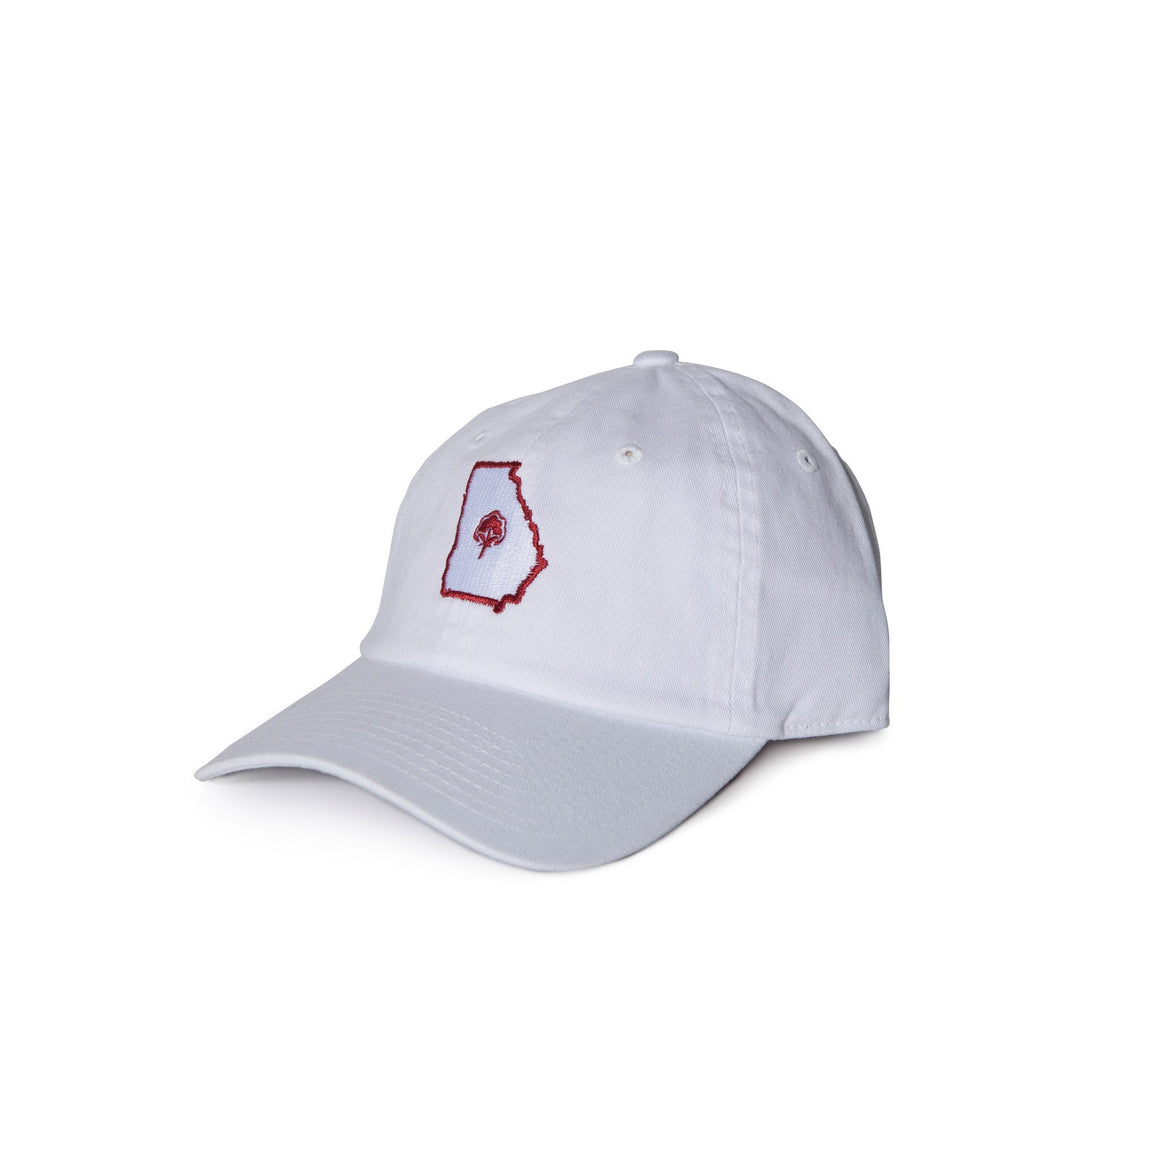 15c0a87c806 ... discount code for old state pride hats white with red state georgia ga  relax twill hats